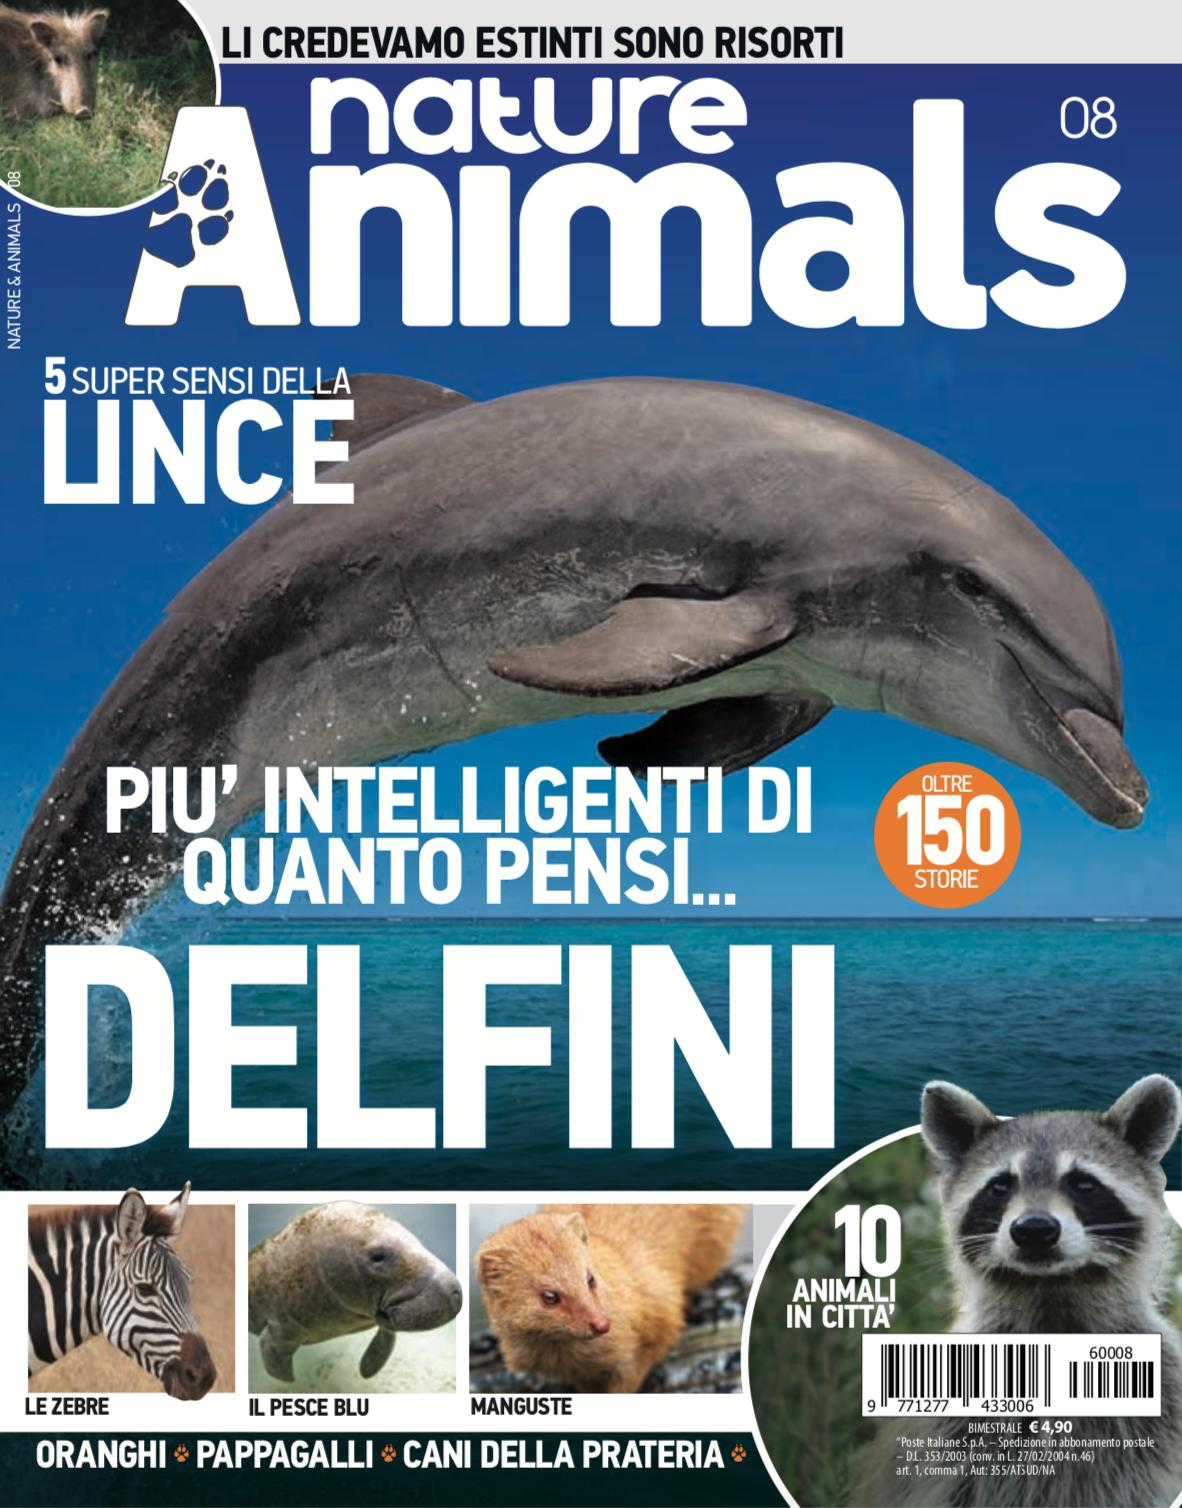 Nature_and_animals_08_copertina.png